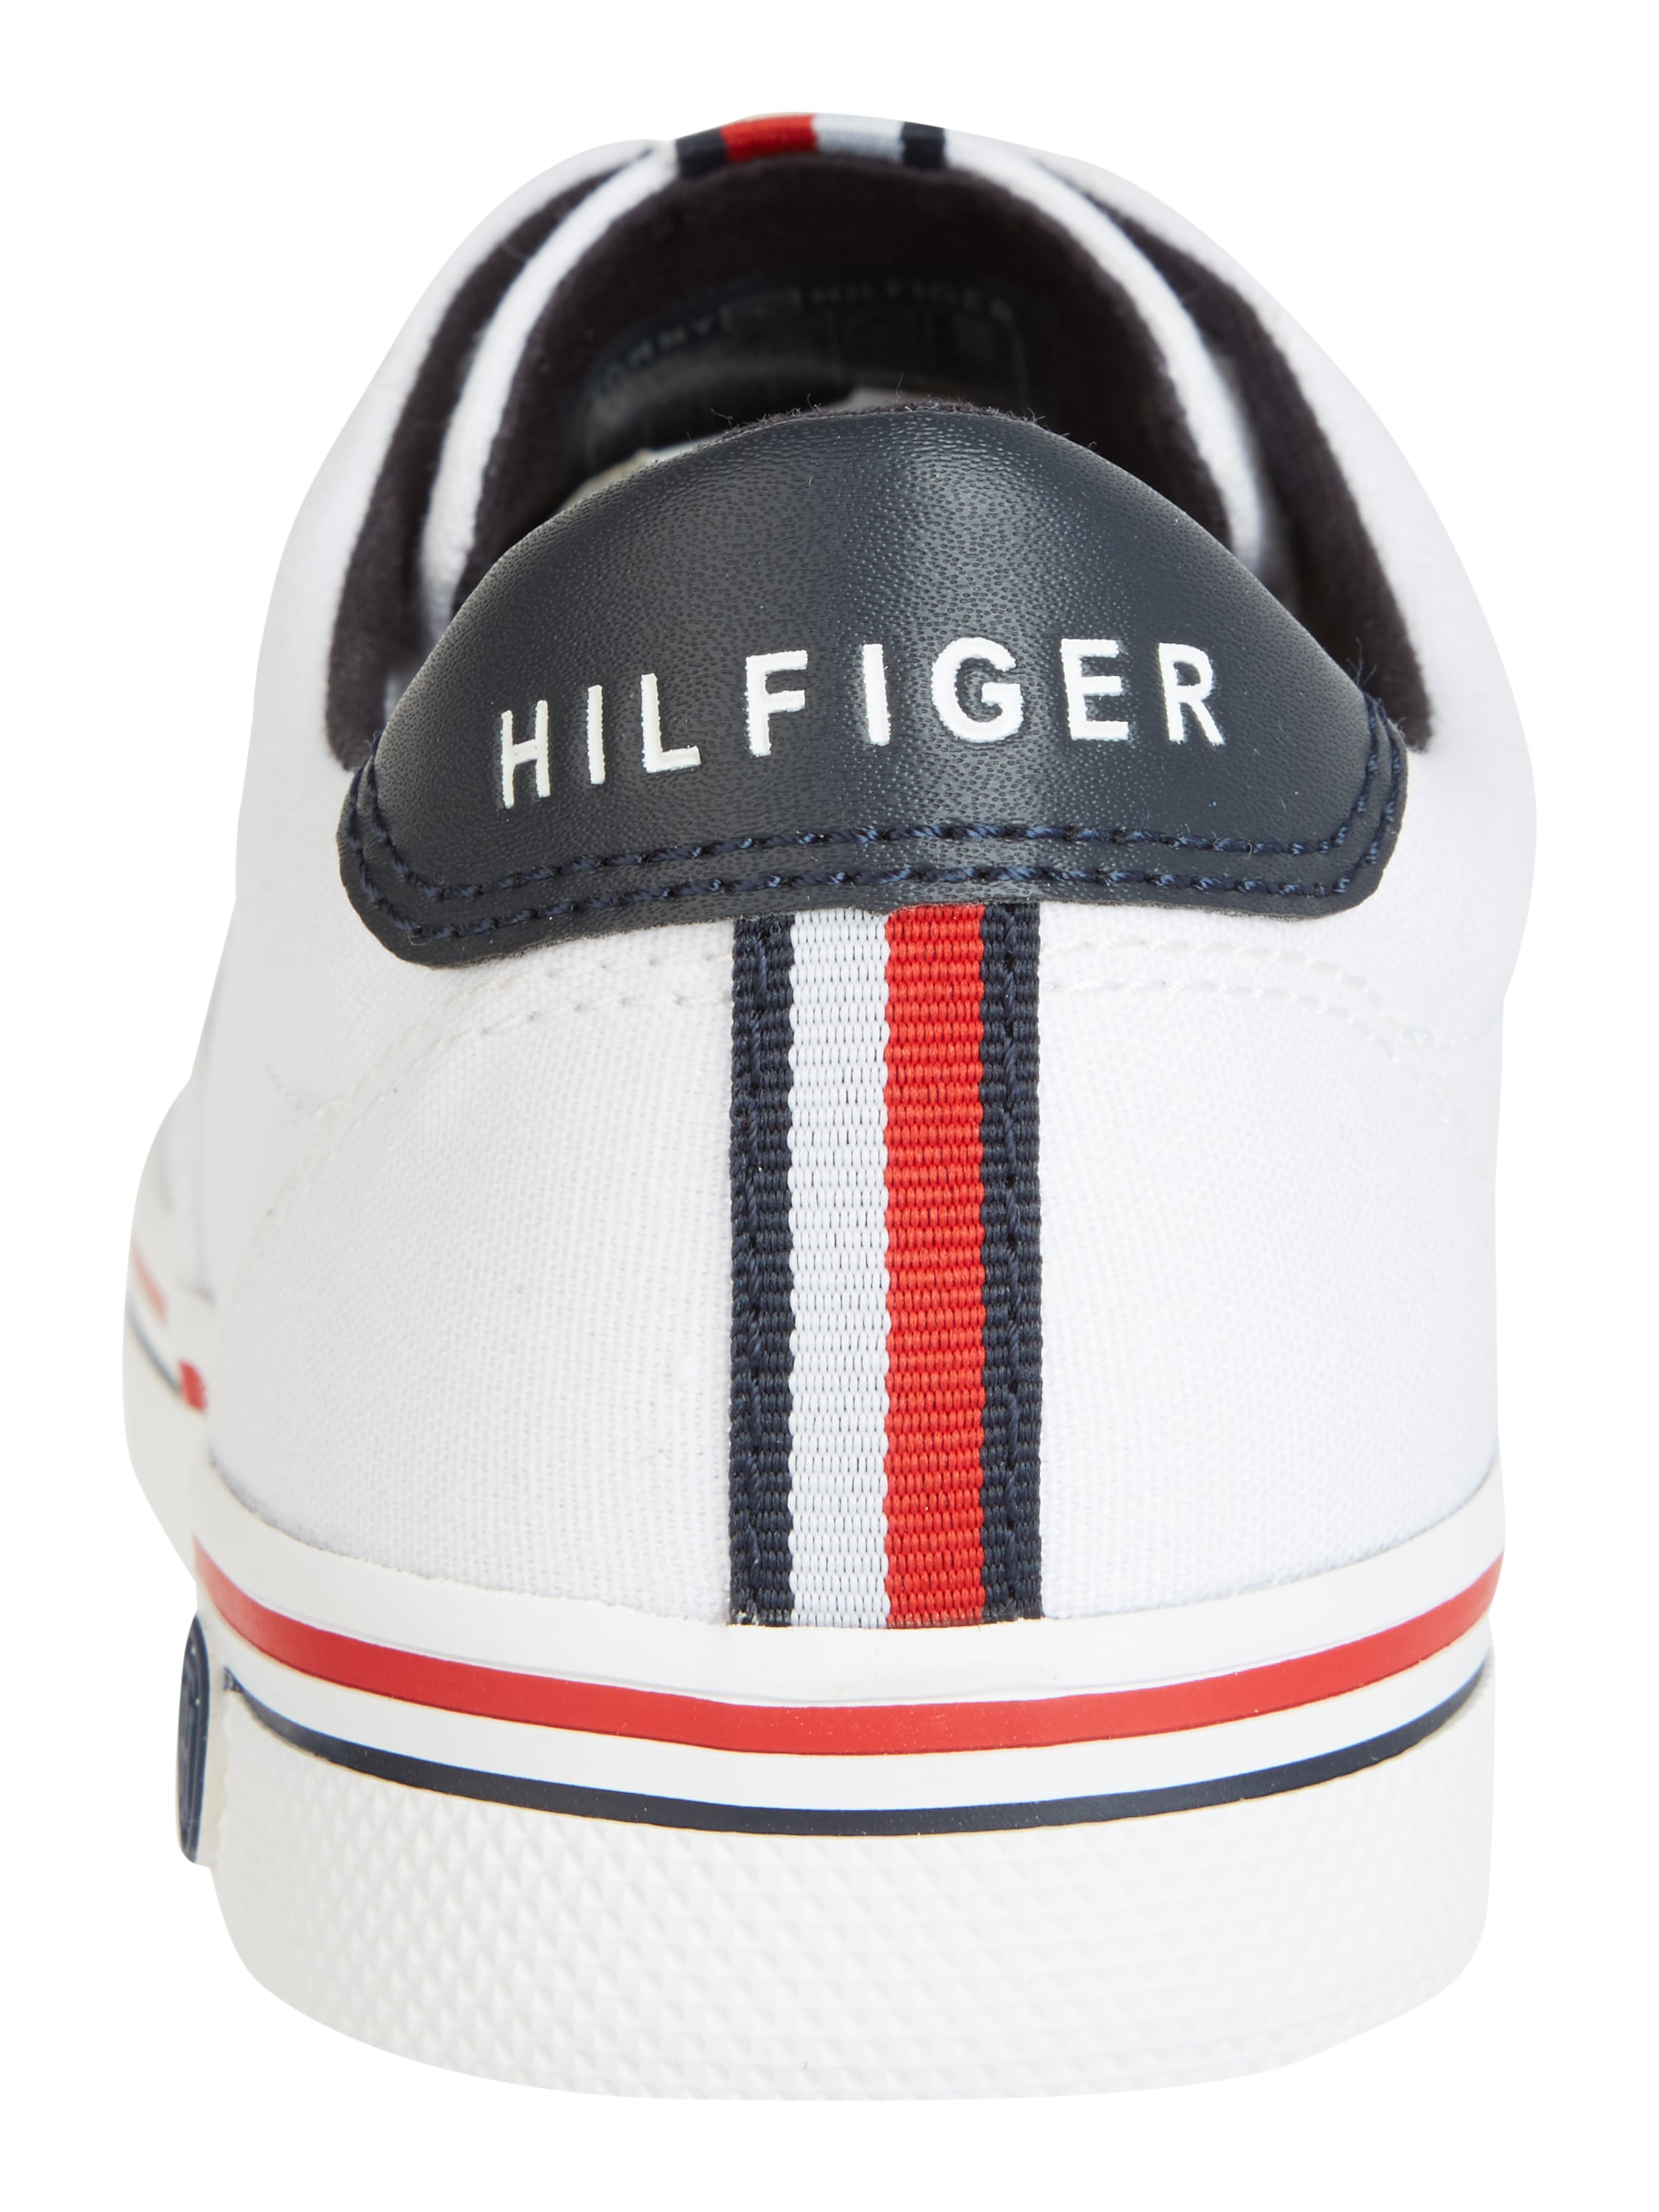 tommy hilfiger sneaker aus canvas in wei online kaufen. Black Bedroom Furniture Sets. Home Design Ideas